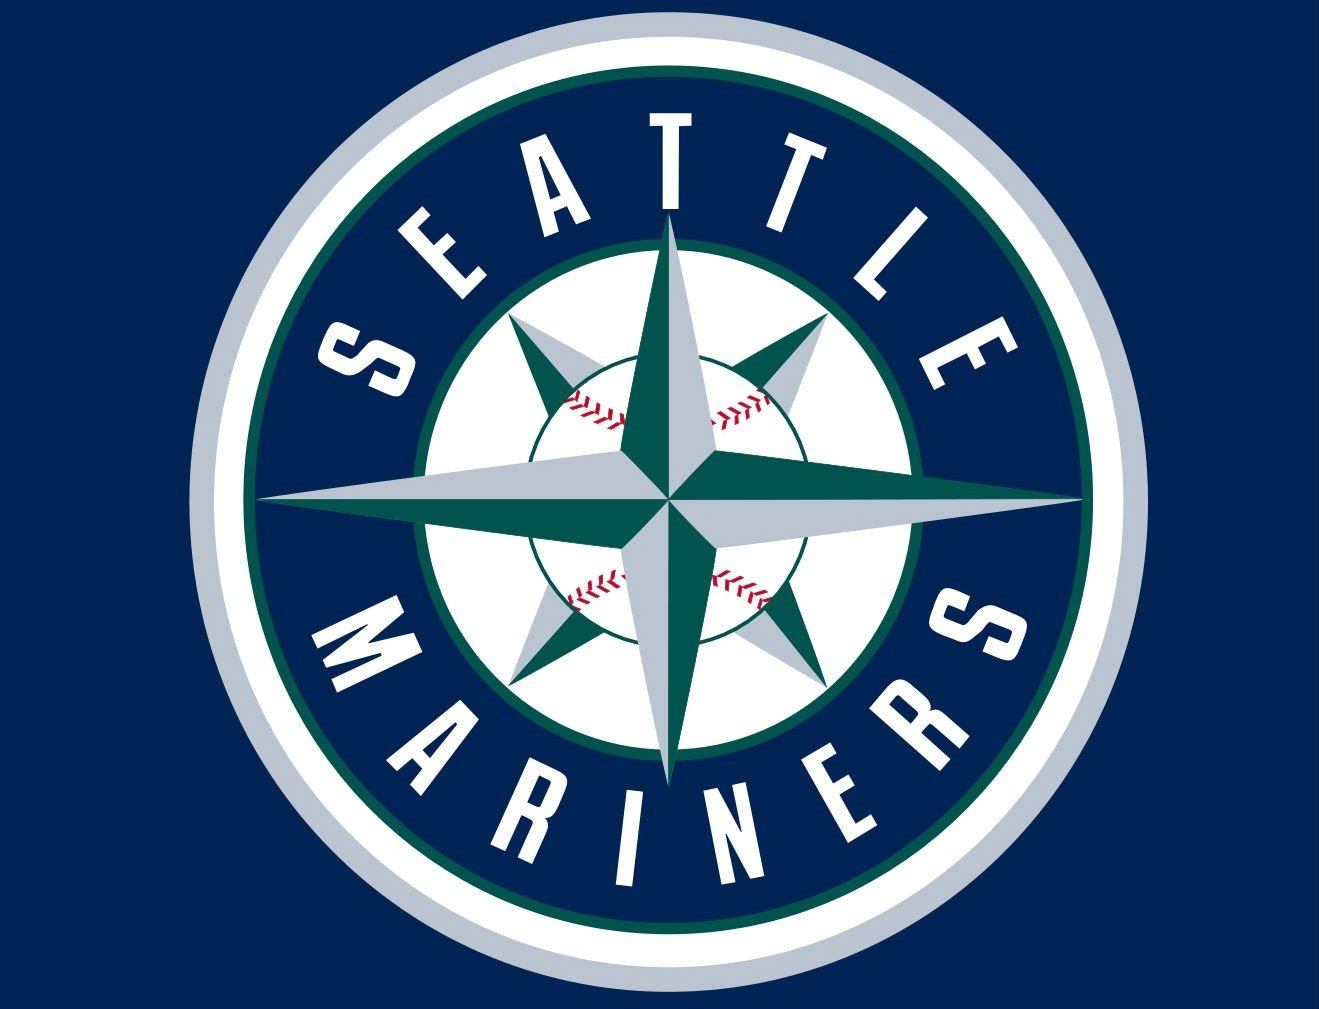 Mariners win 4th straight game, beating Rockies 5-0